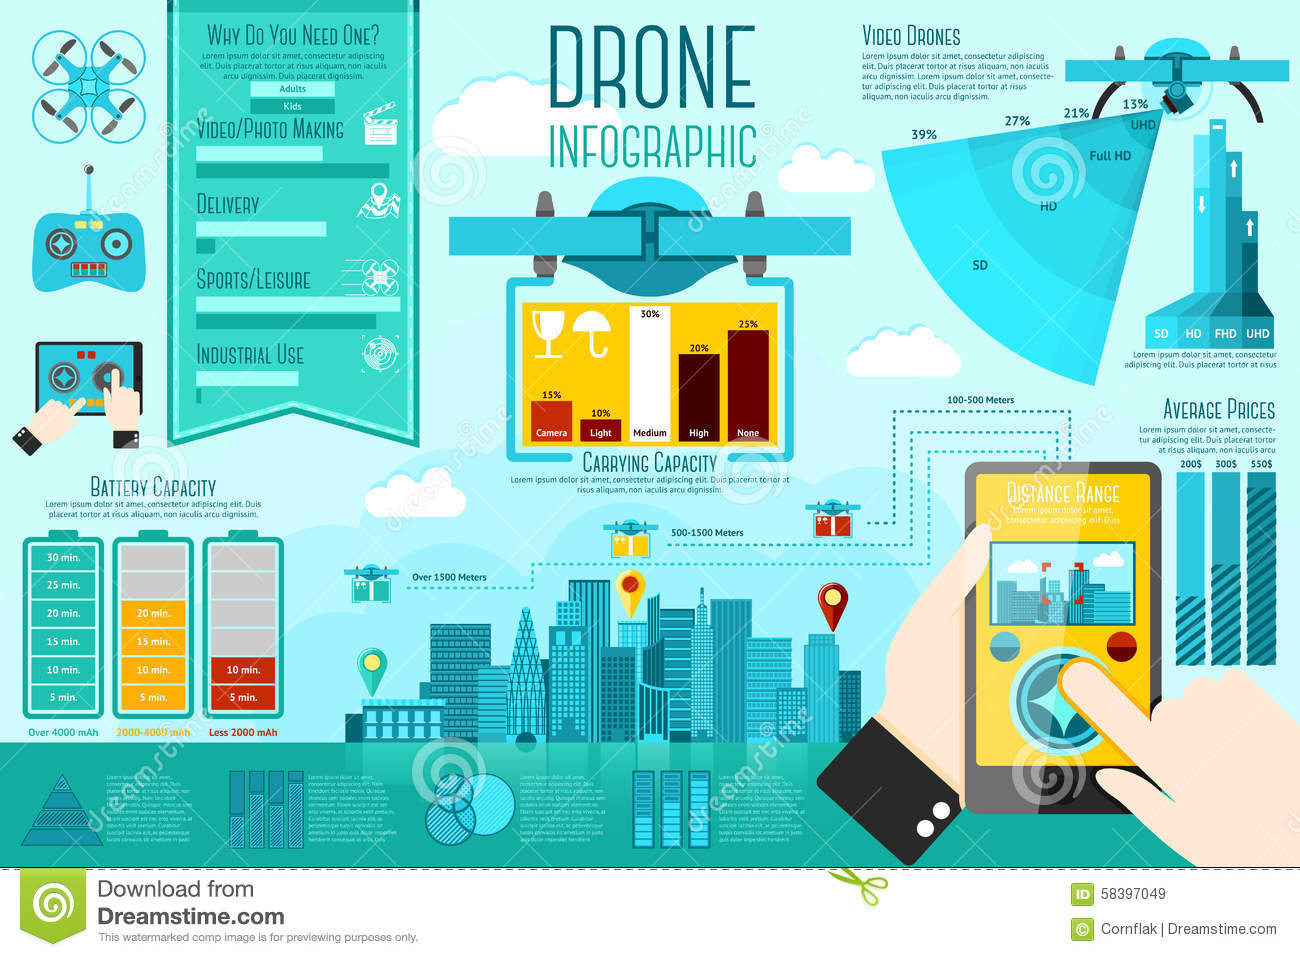 drone quadrotor with Stock Illustration Set Modern Air Drones Infographic Elements Icons Different Charts Rates Etc Places Your Text Vector Illustration Image58397049 on Build A Quadcopter Beginners Tutorial 1 moreover This Flying Machine Uses Ducted Fans For Propulsion And Control furthermore The MEGADRONE Big Carry Passenger Chinese Firm Says Self Flying Craft Used Smart Taxi further Stock Illustration Set Modern Air Drones Infographic Elements Icons Different Charts Rates Etc Places Your Text Vector Illustration Image58397049 further TCB RC Drone Lipo Battery 4S 14 8V 2200mAh 25c For RC Airplane Car Helicopter AKKU.